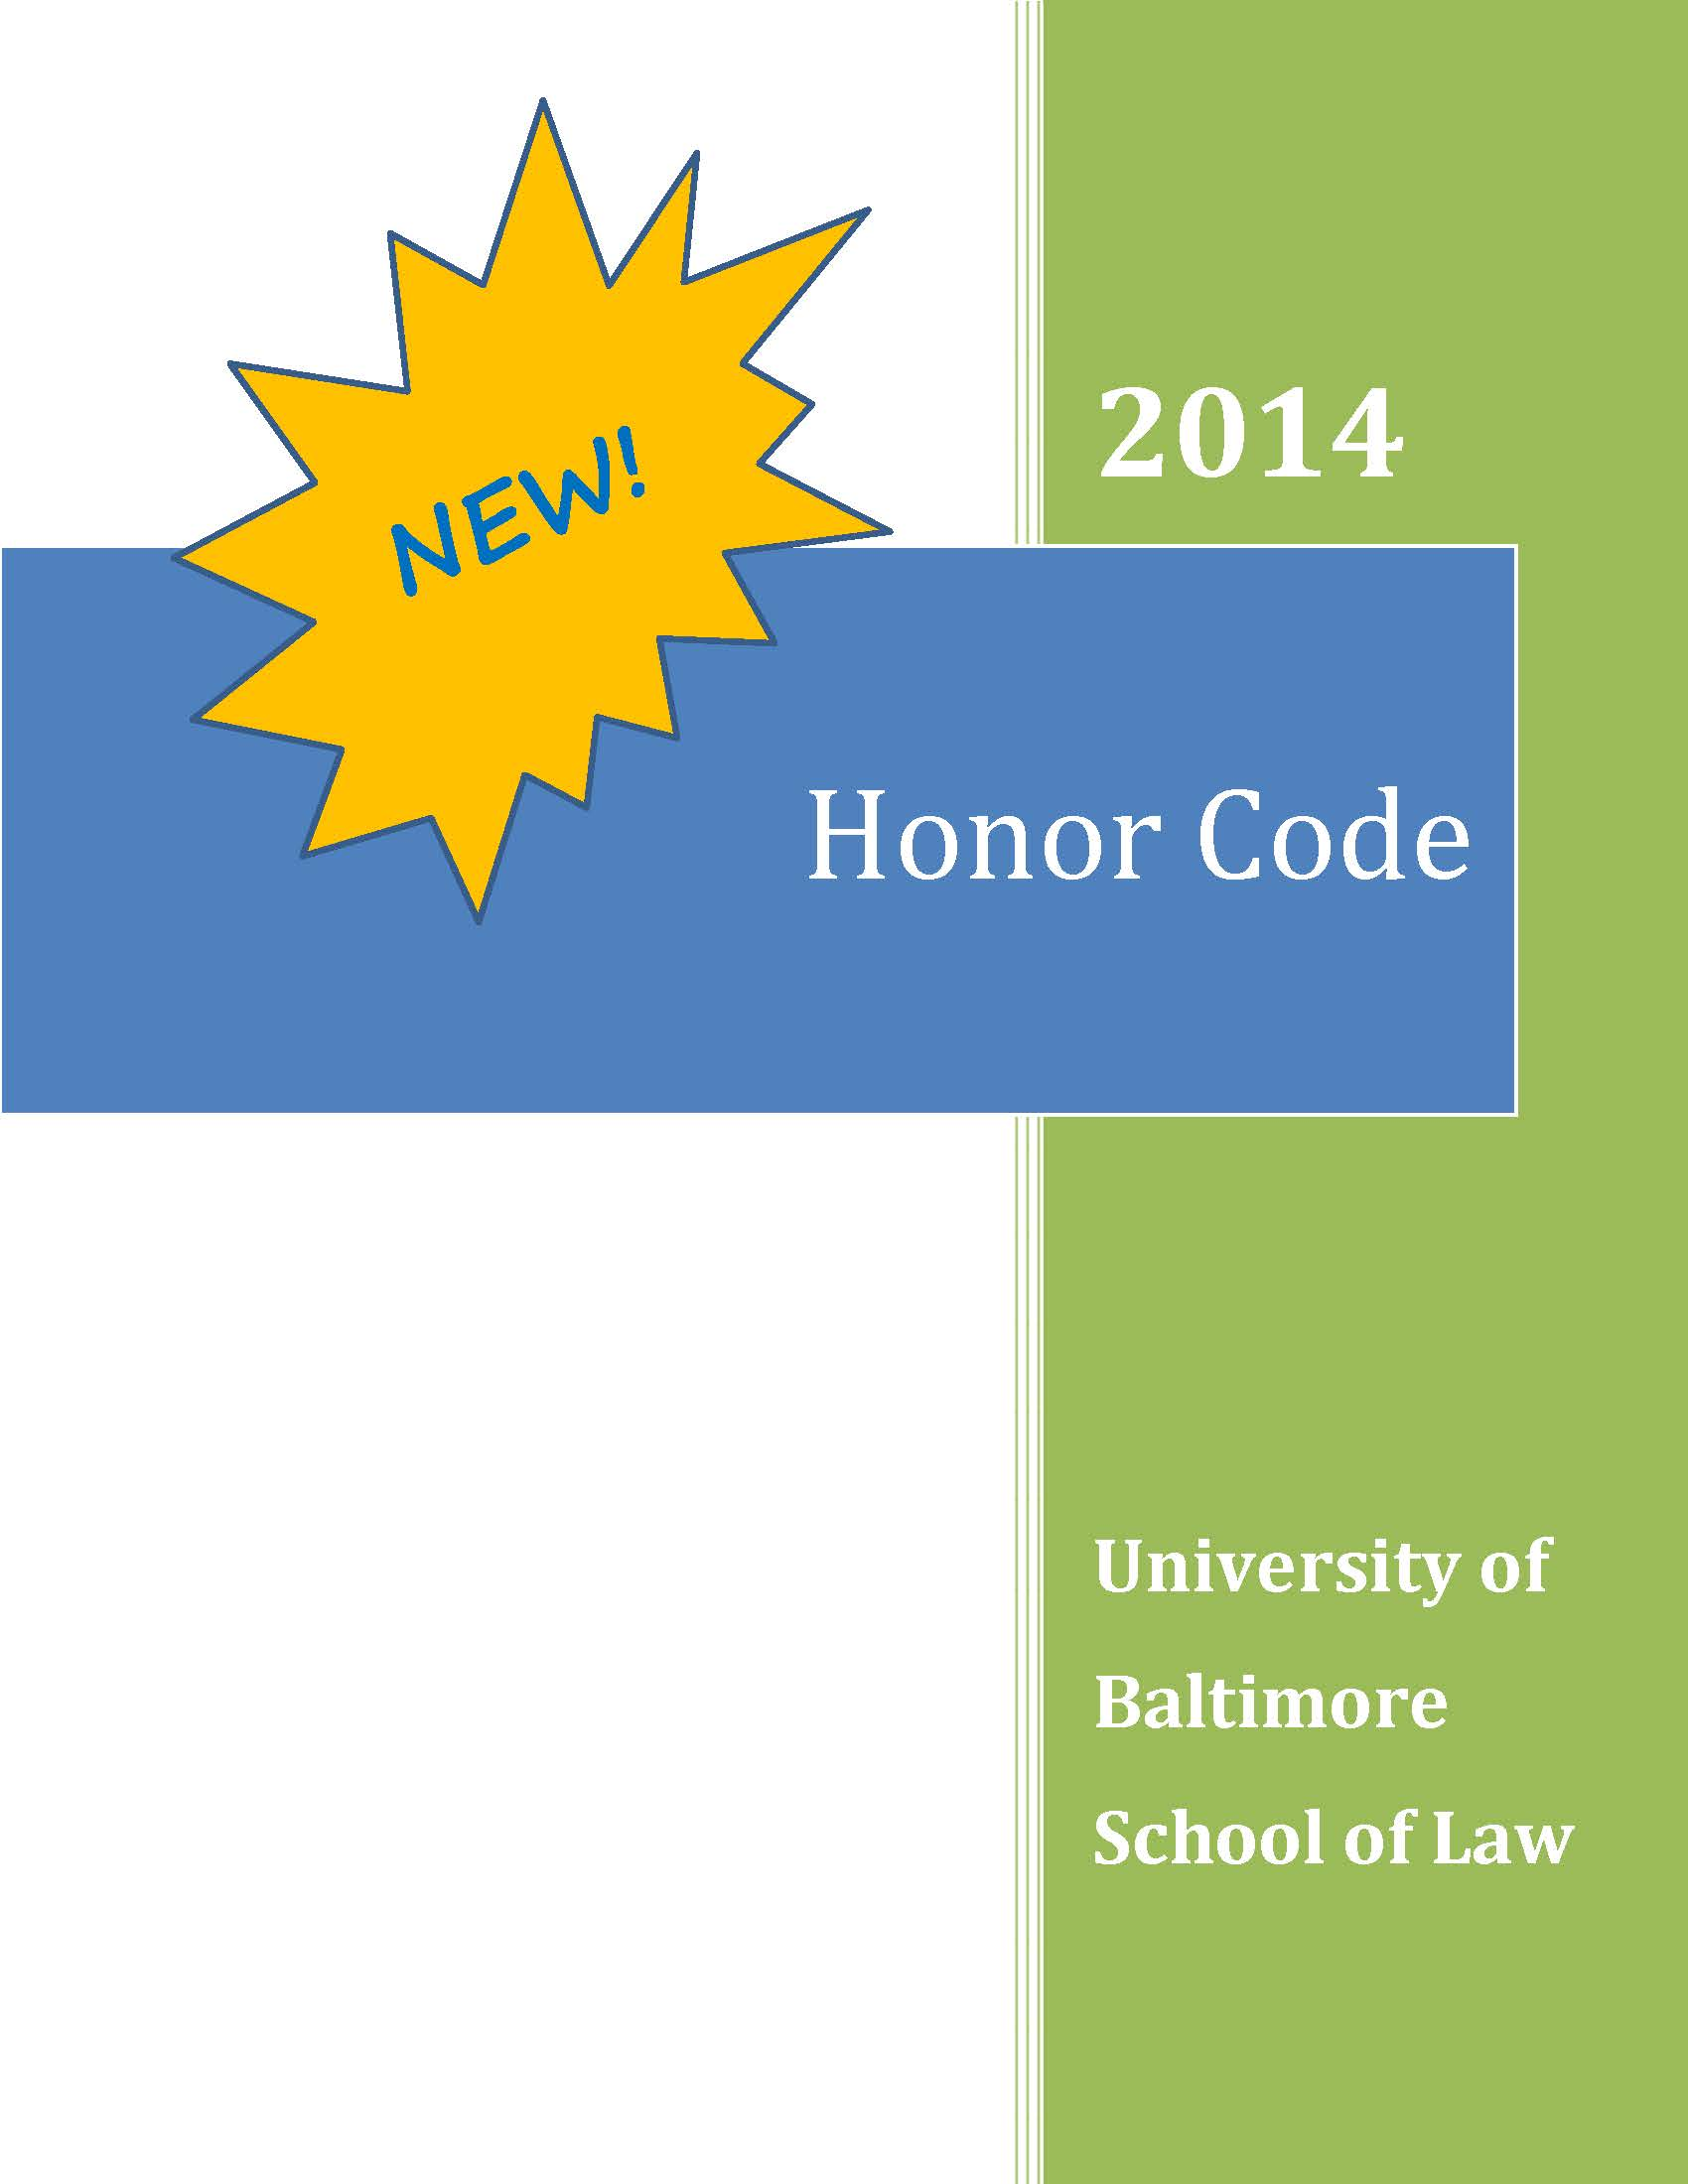 Cover of the 2014 Honor Code